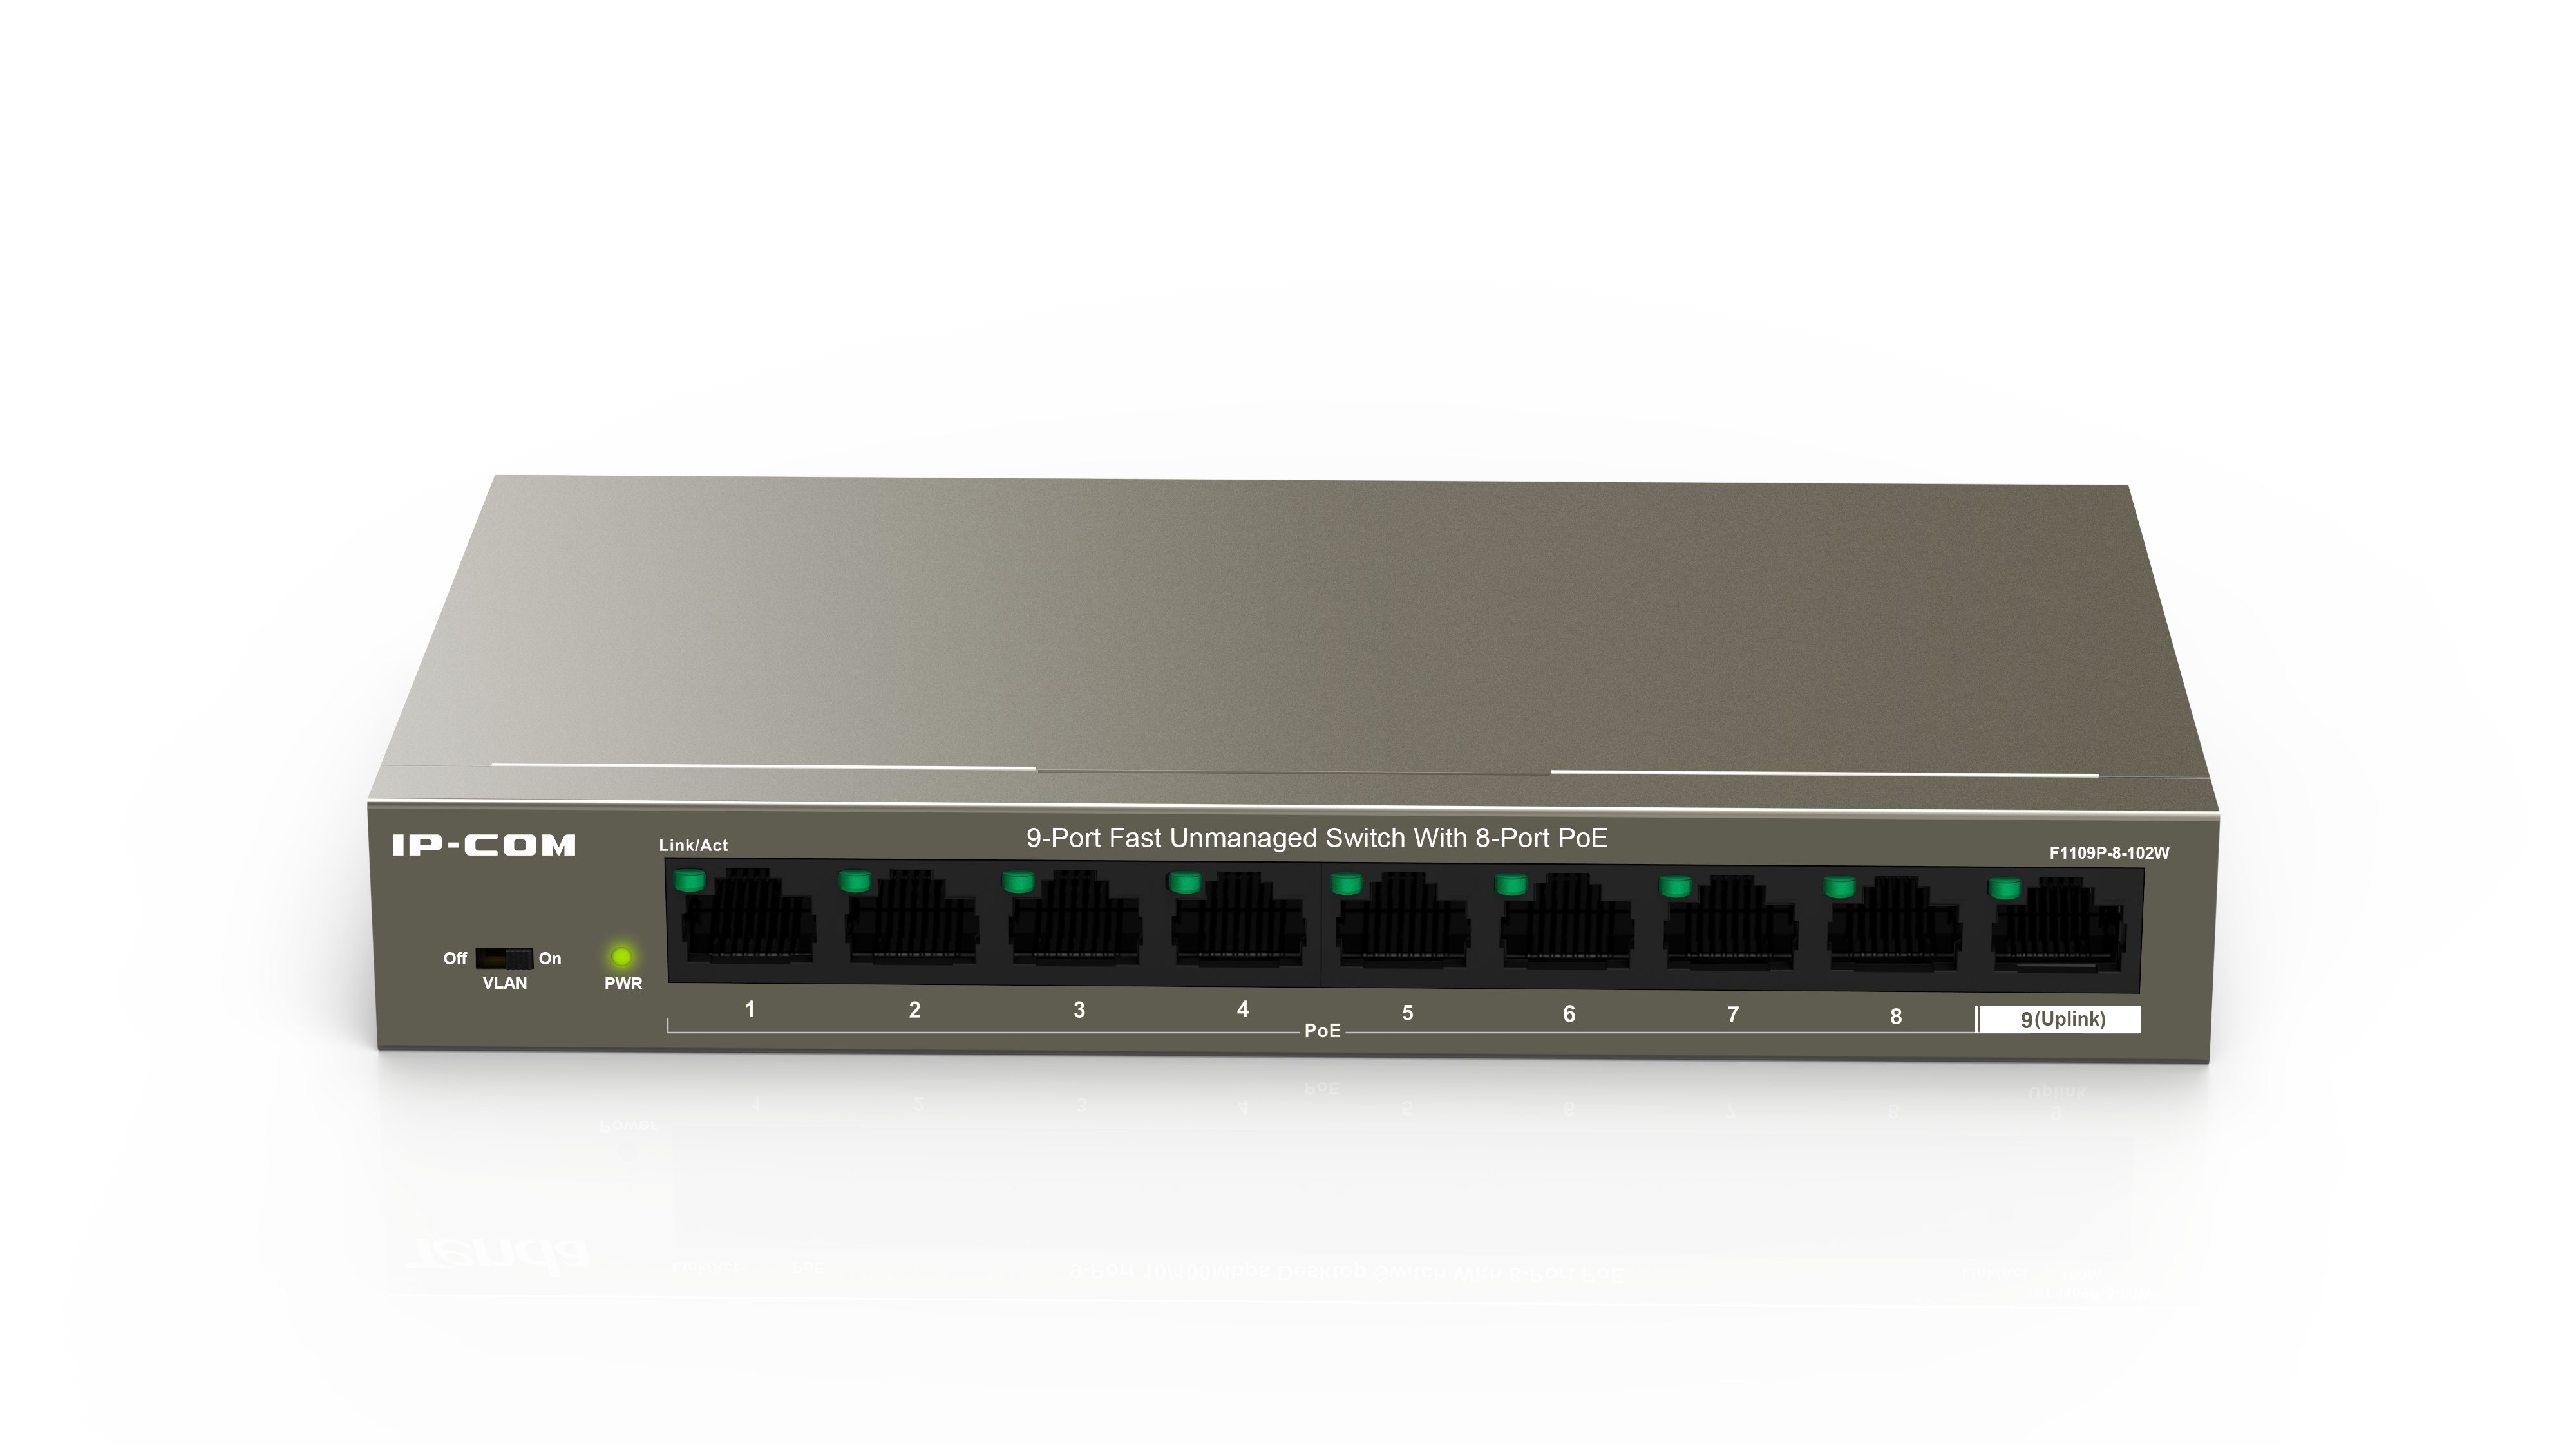 IP-COM F1109P-8-102W - Unmanaged - Fast Ethernet (10/100) - Power over Ethernet (PoE) - Wandmontage